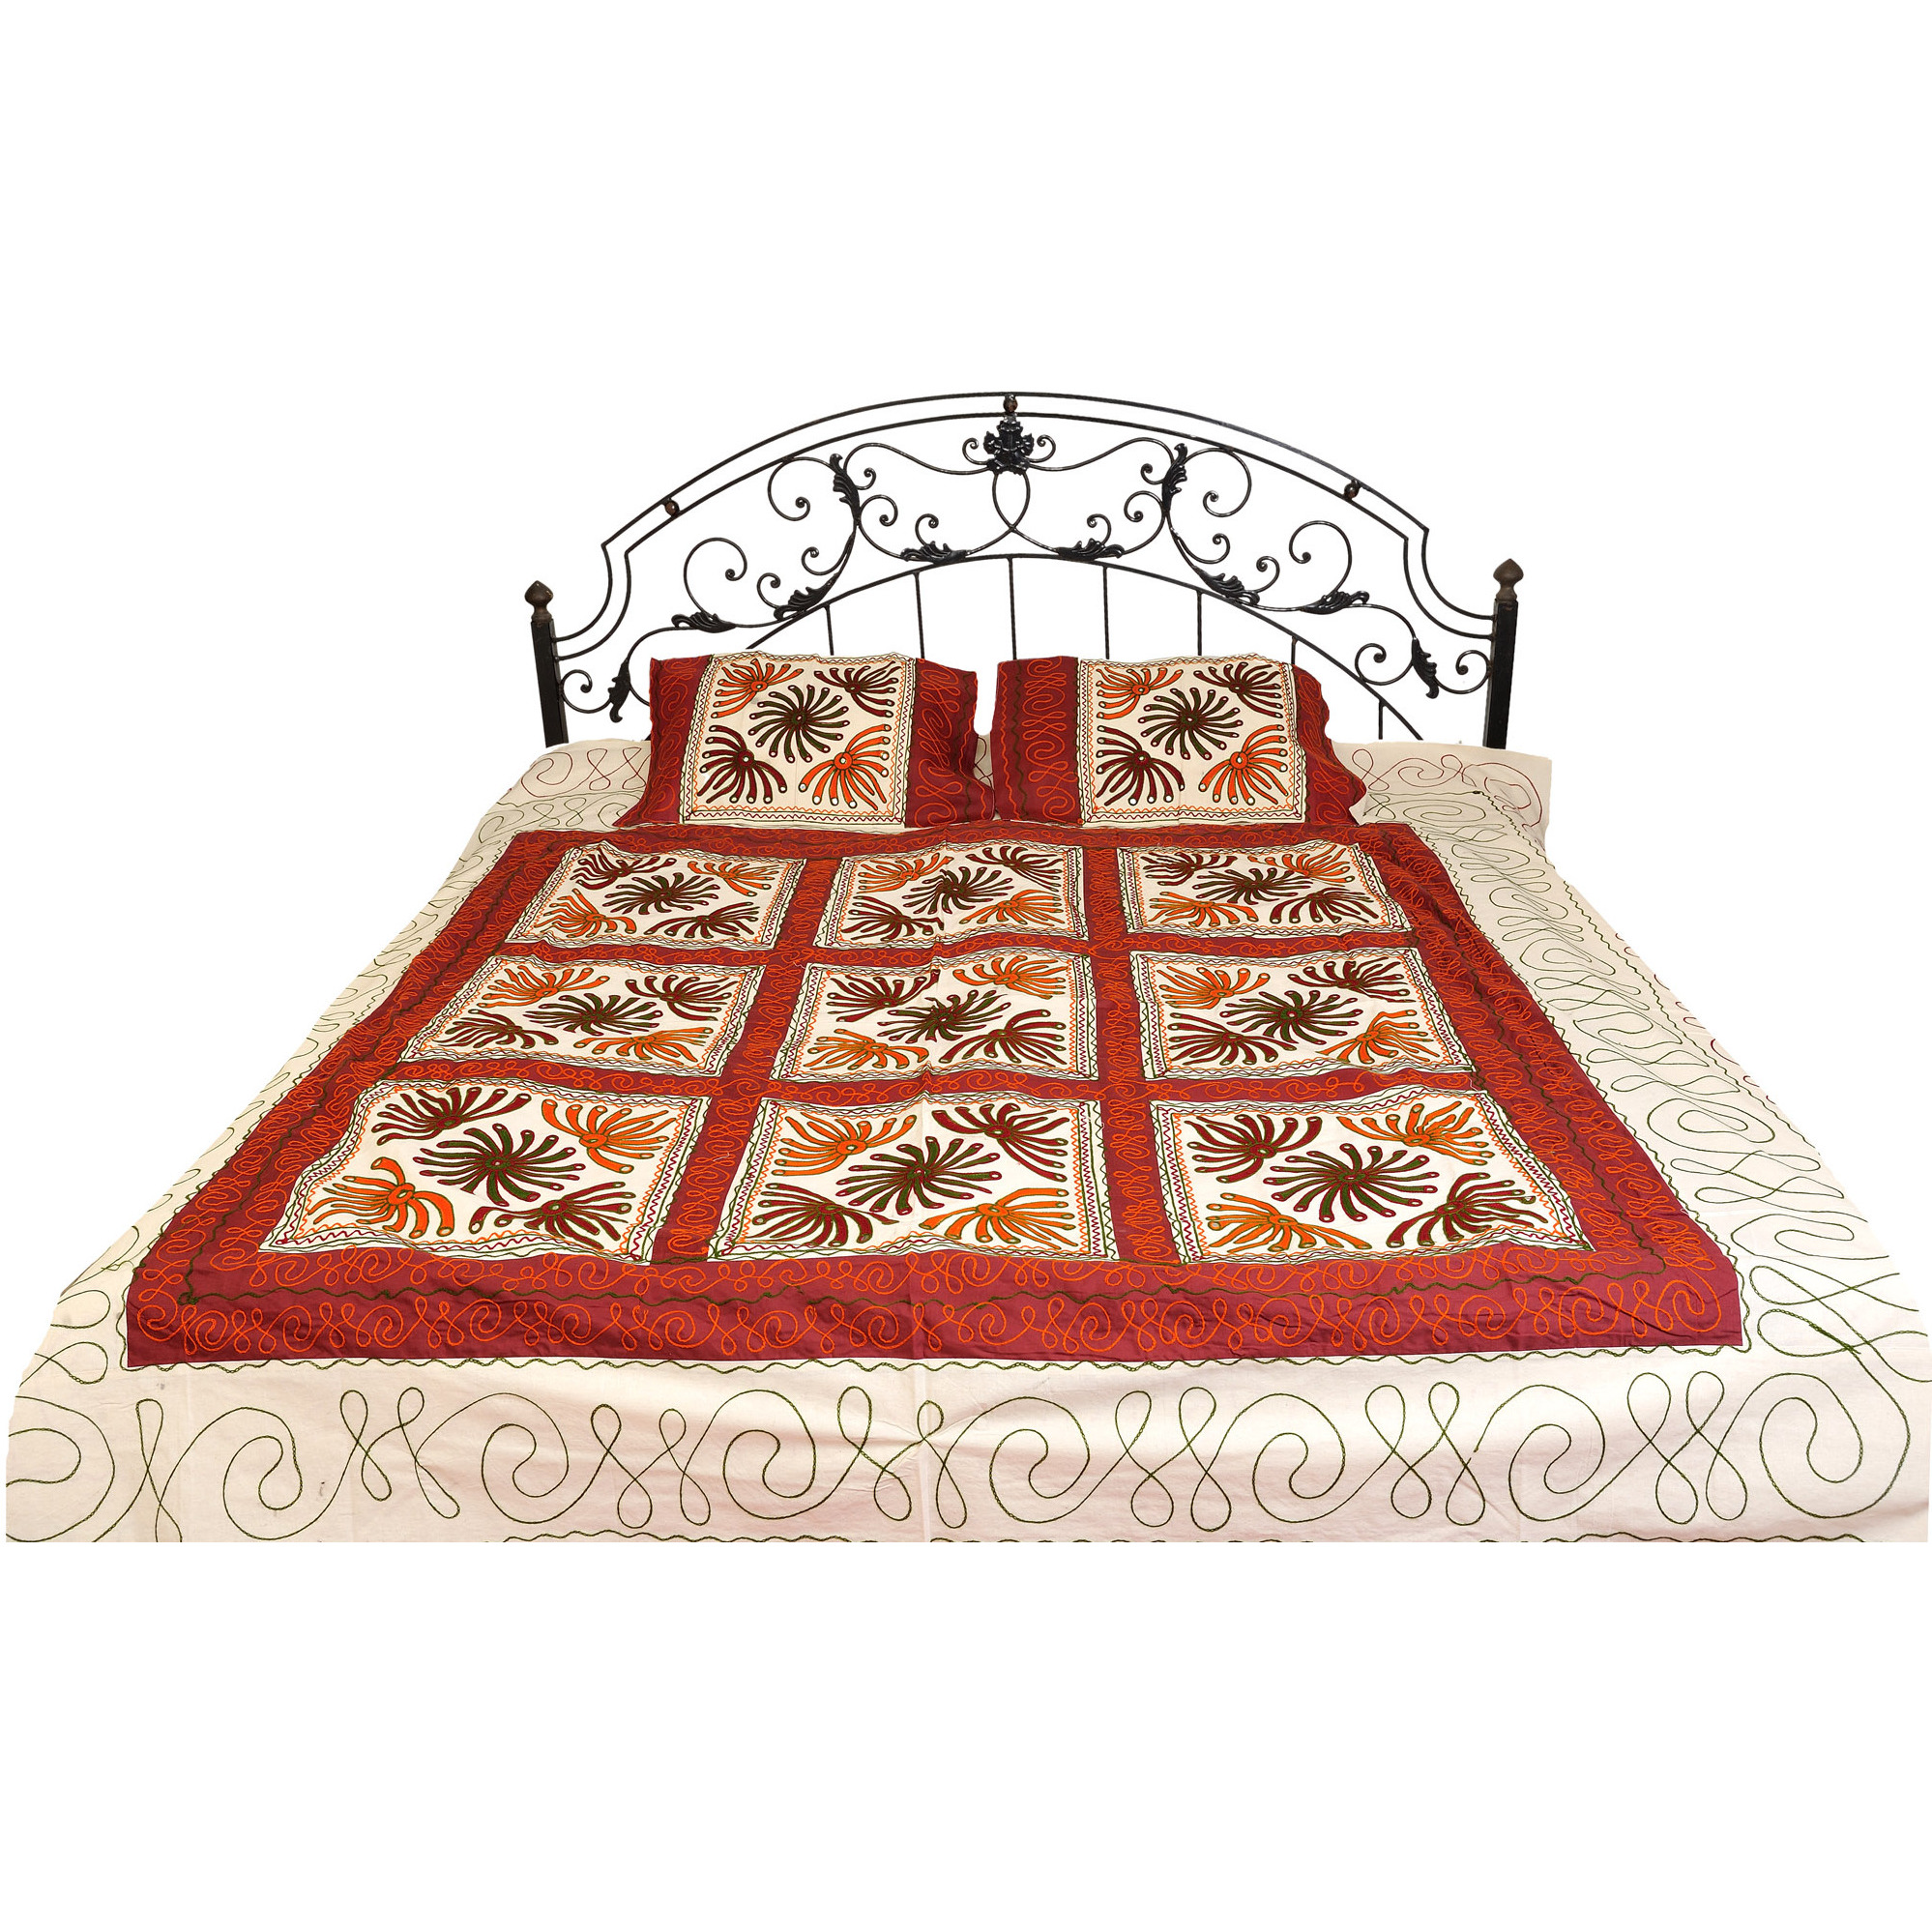 Winter-White and Ruby Bedspread from Gujarat with Embroidered Flowers